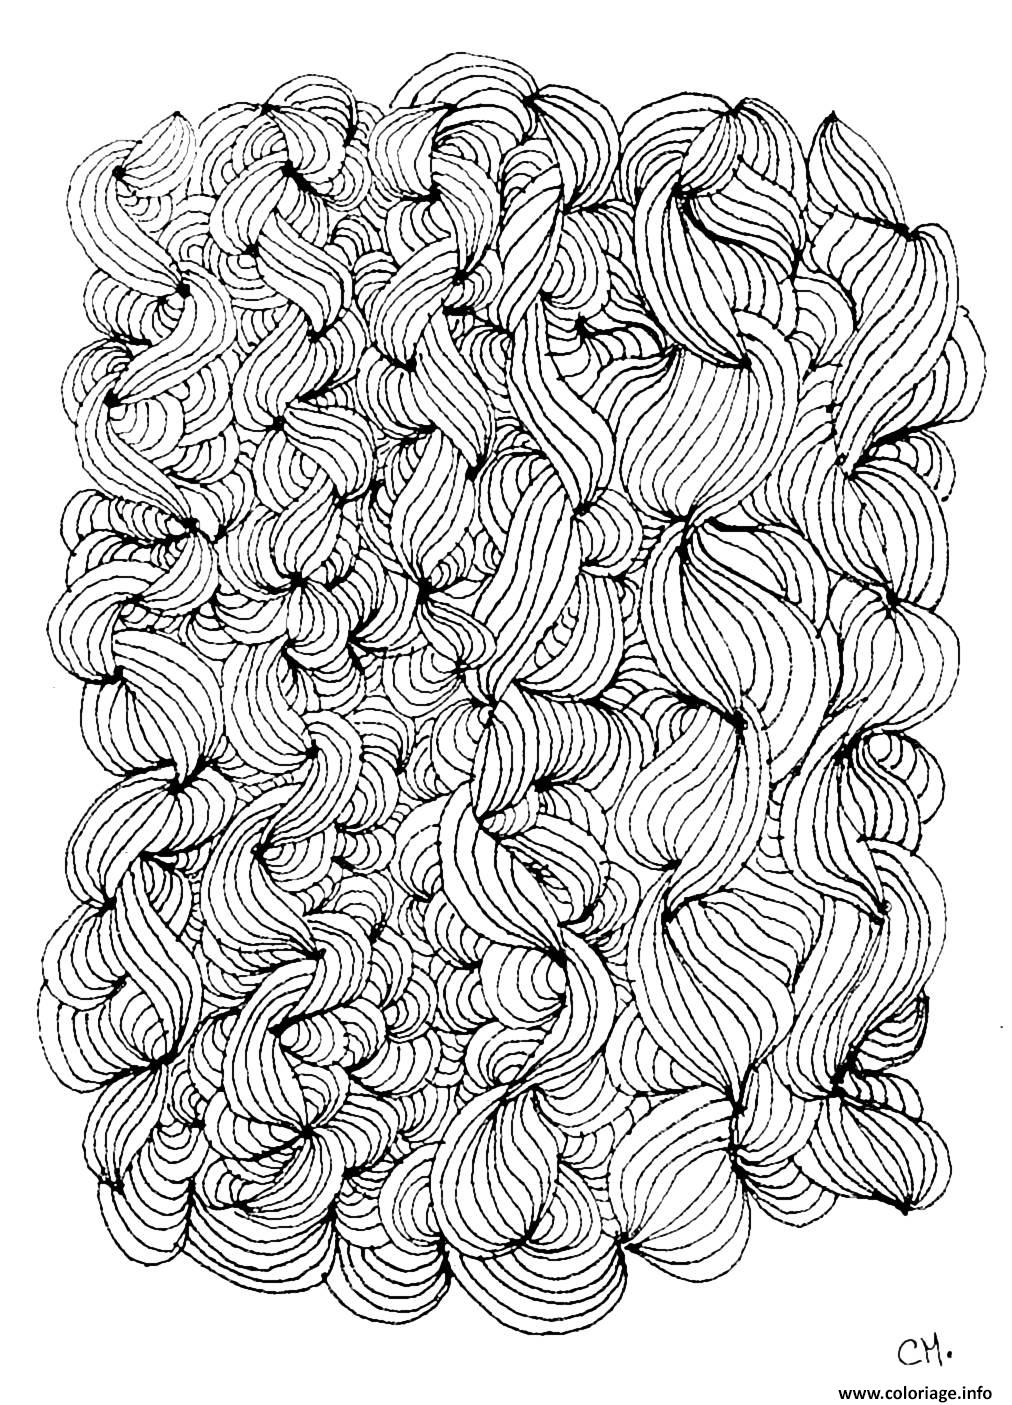 Dessin adulte zentangle by cathym 3 Coloriage Gratuit à Imprimer